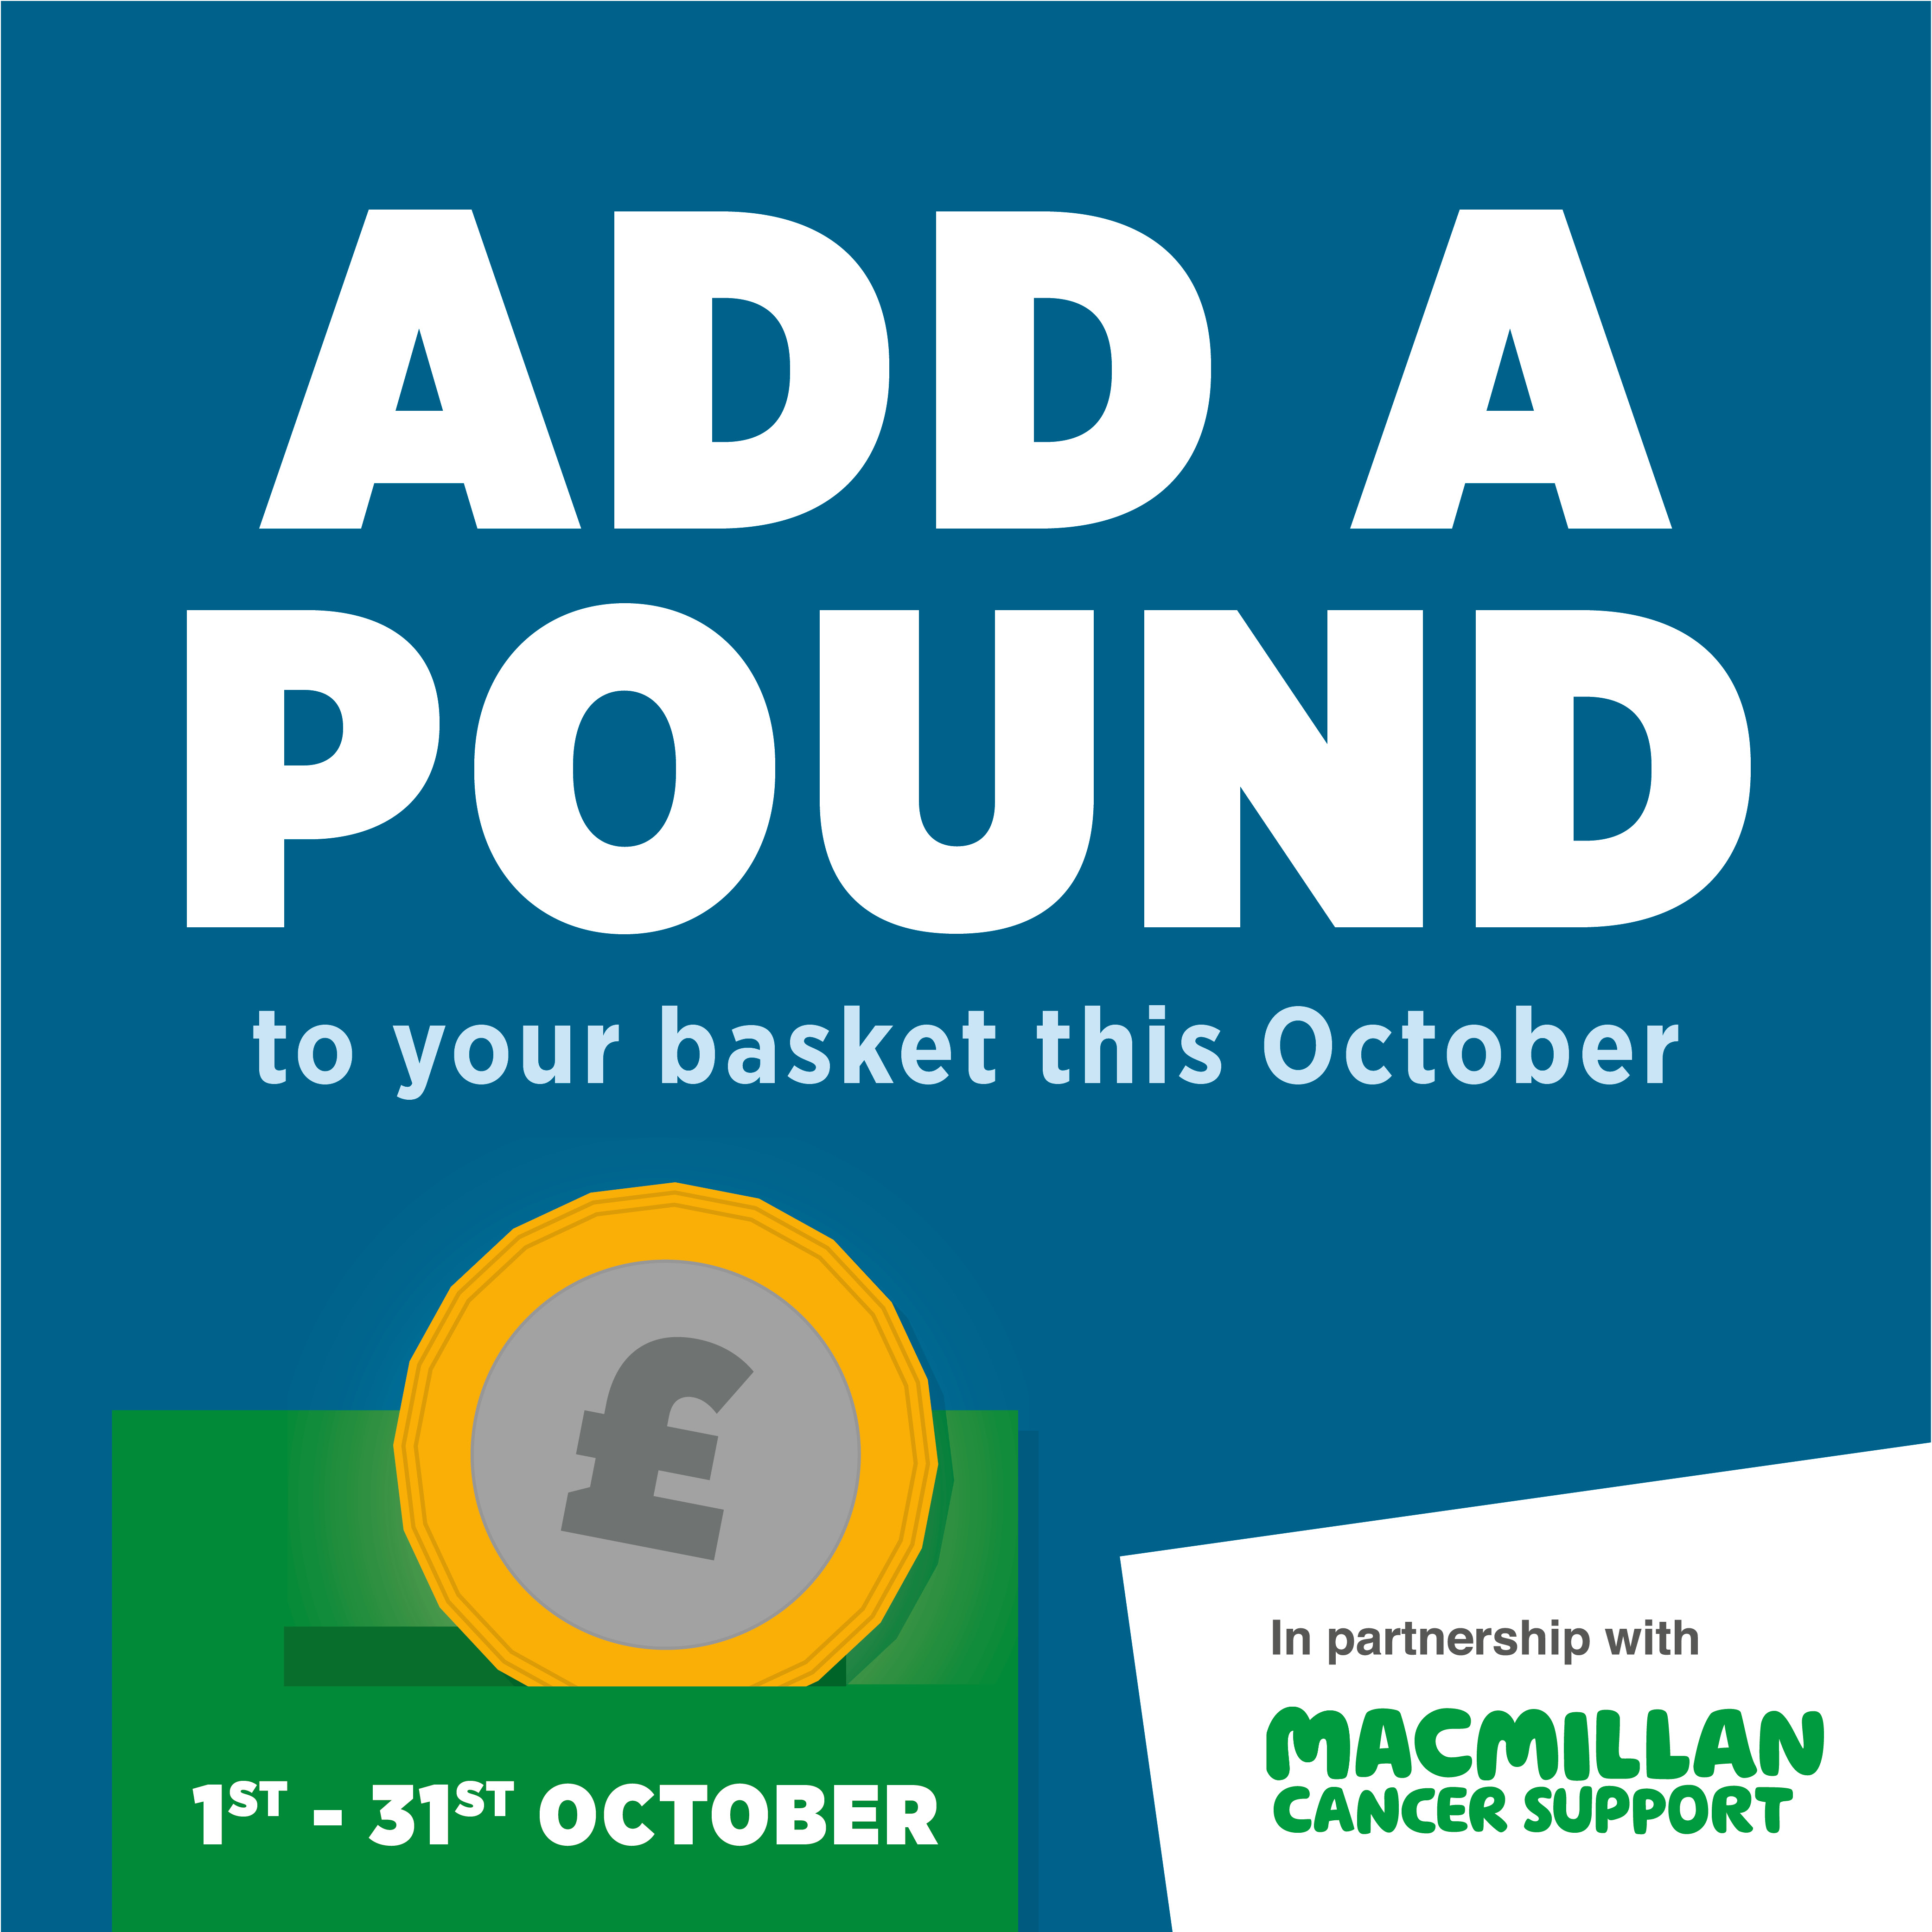 ADD A POUND FOR MACMILLAN THIS OCTOBER